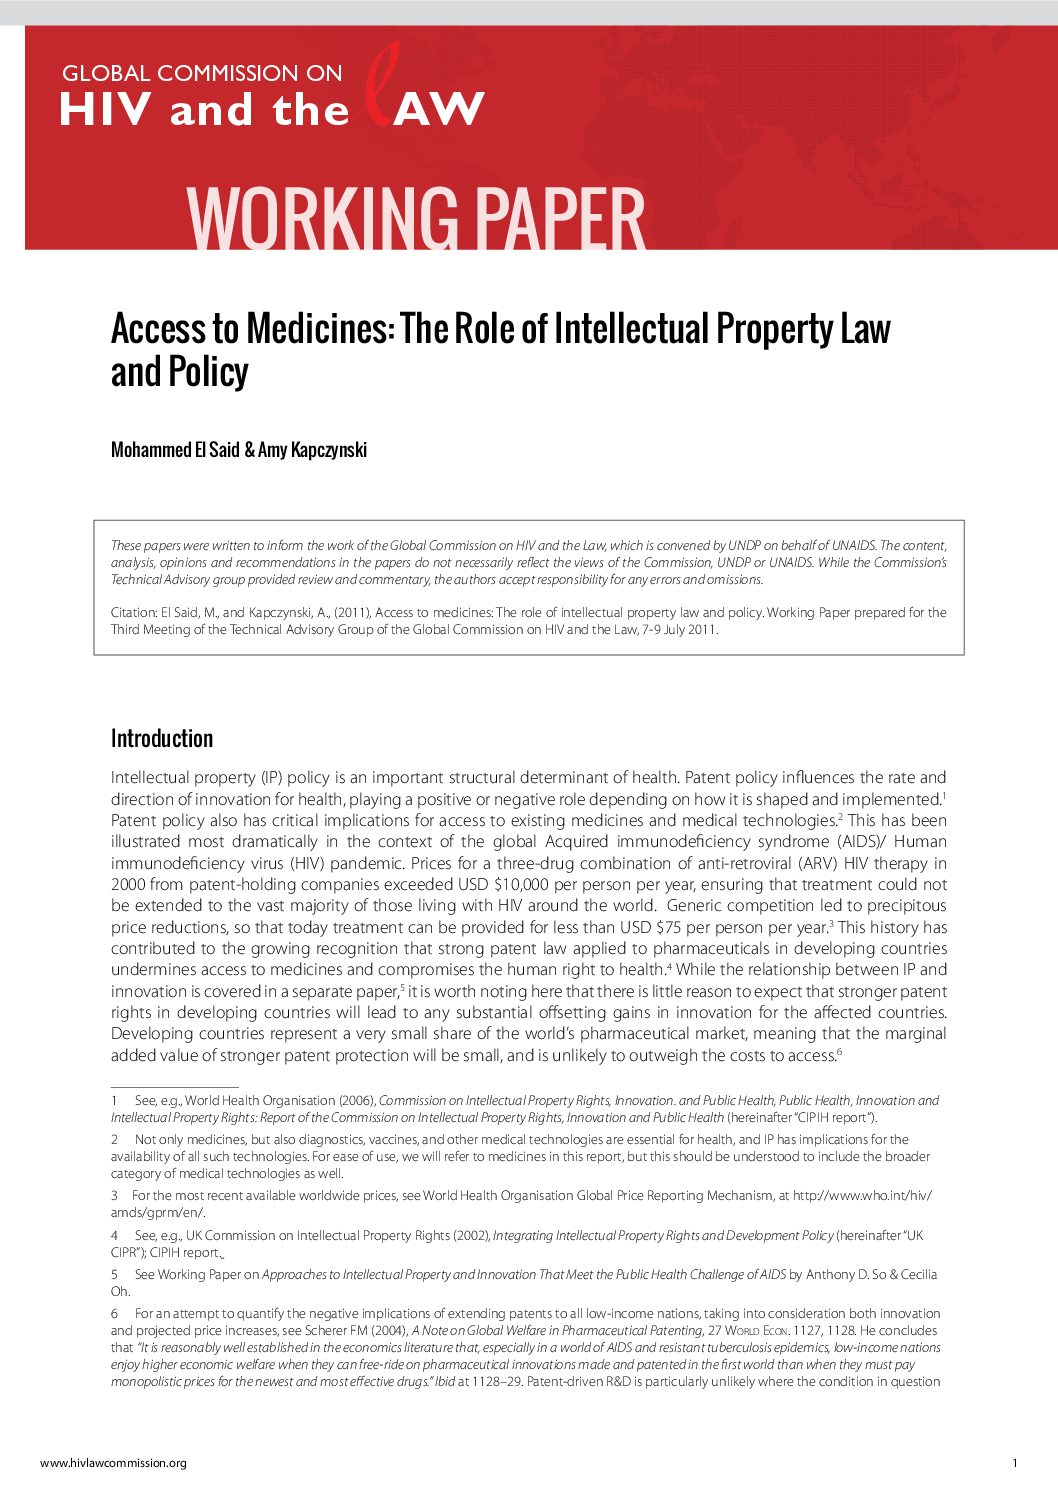 Access to medicines the role of intellectual property law and policy